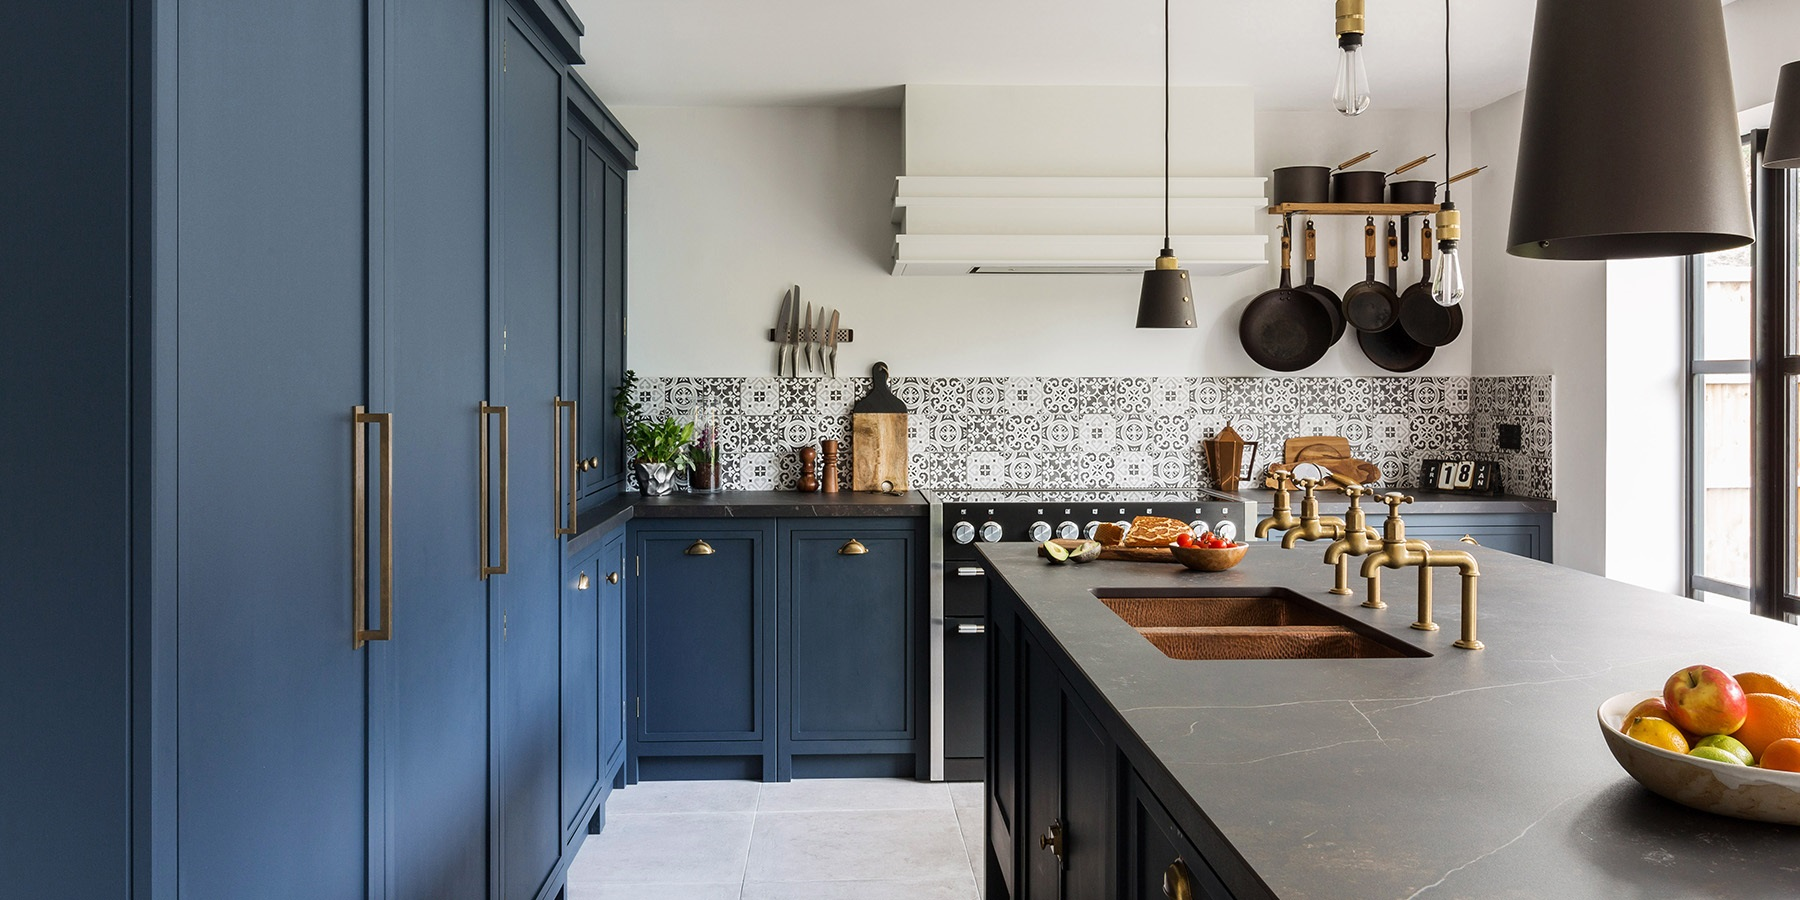 Industrial Navy Blue Shaker Kitchen - Beautiful Burlanes Decolane kitchen with larder unit and central island, with copper sink and Perrin & Rowe taps.